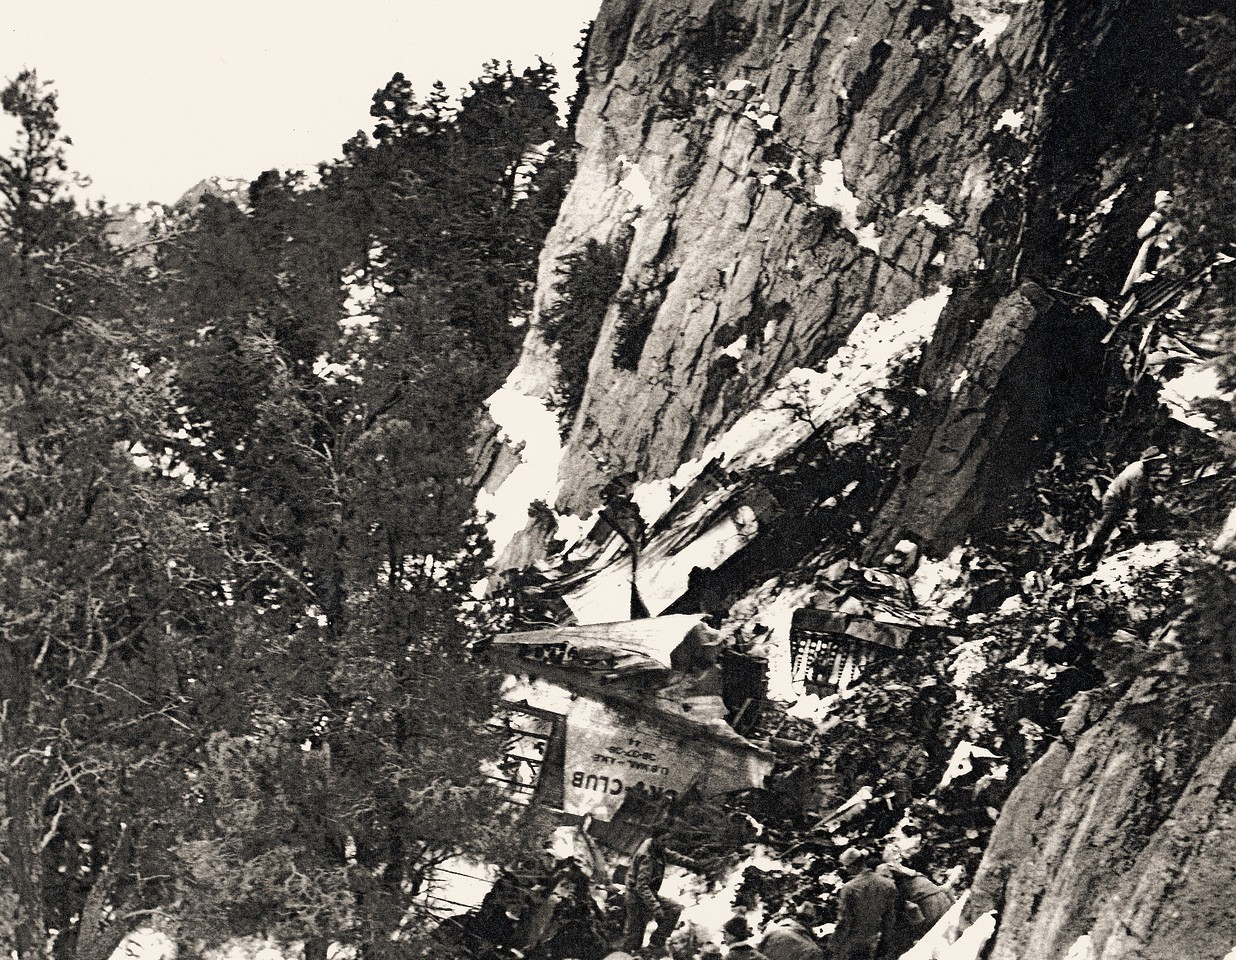 This overview of the crash site not only illustrates the destructive forces involved, but also the steep rugged terrain of Potosi Mountain. (LostFlights Photo)